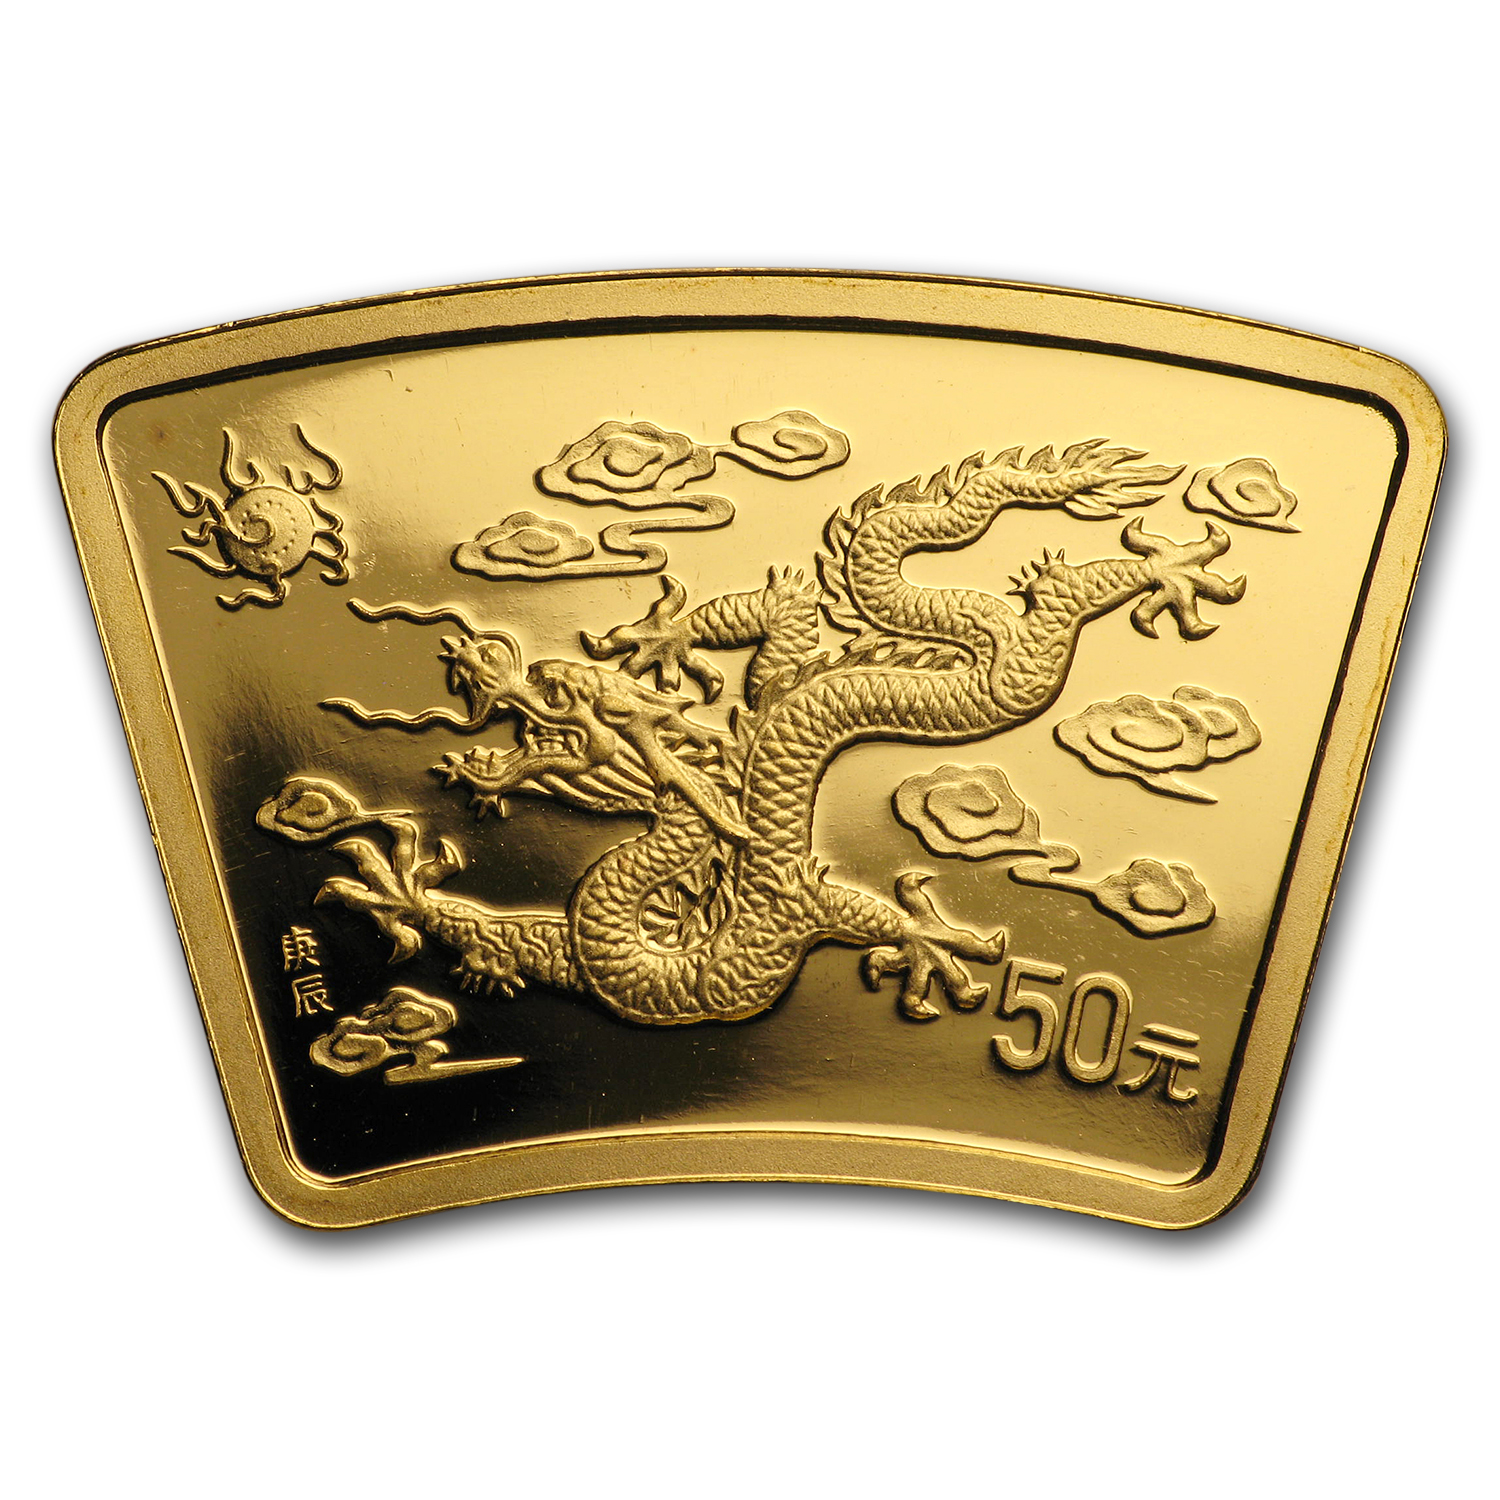 2000 China 1/2 oz Gold Year of the Dragon Fan (w/Box and COA)